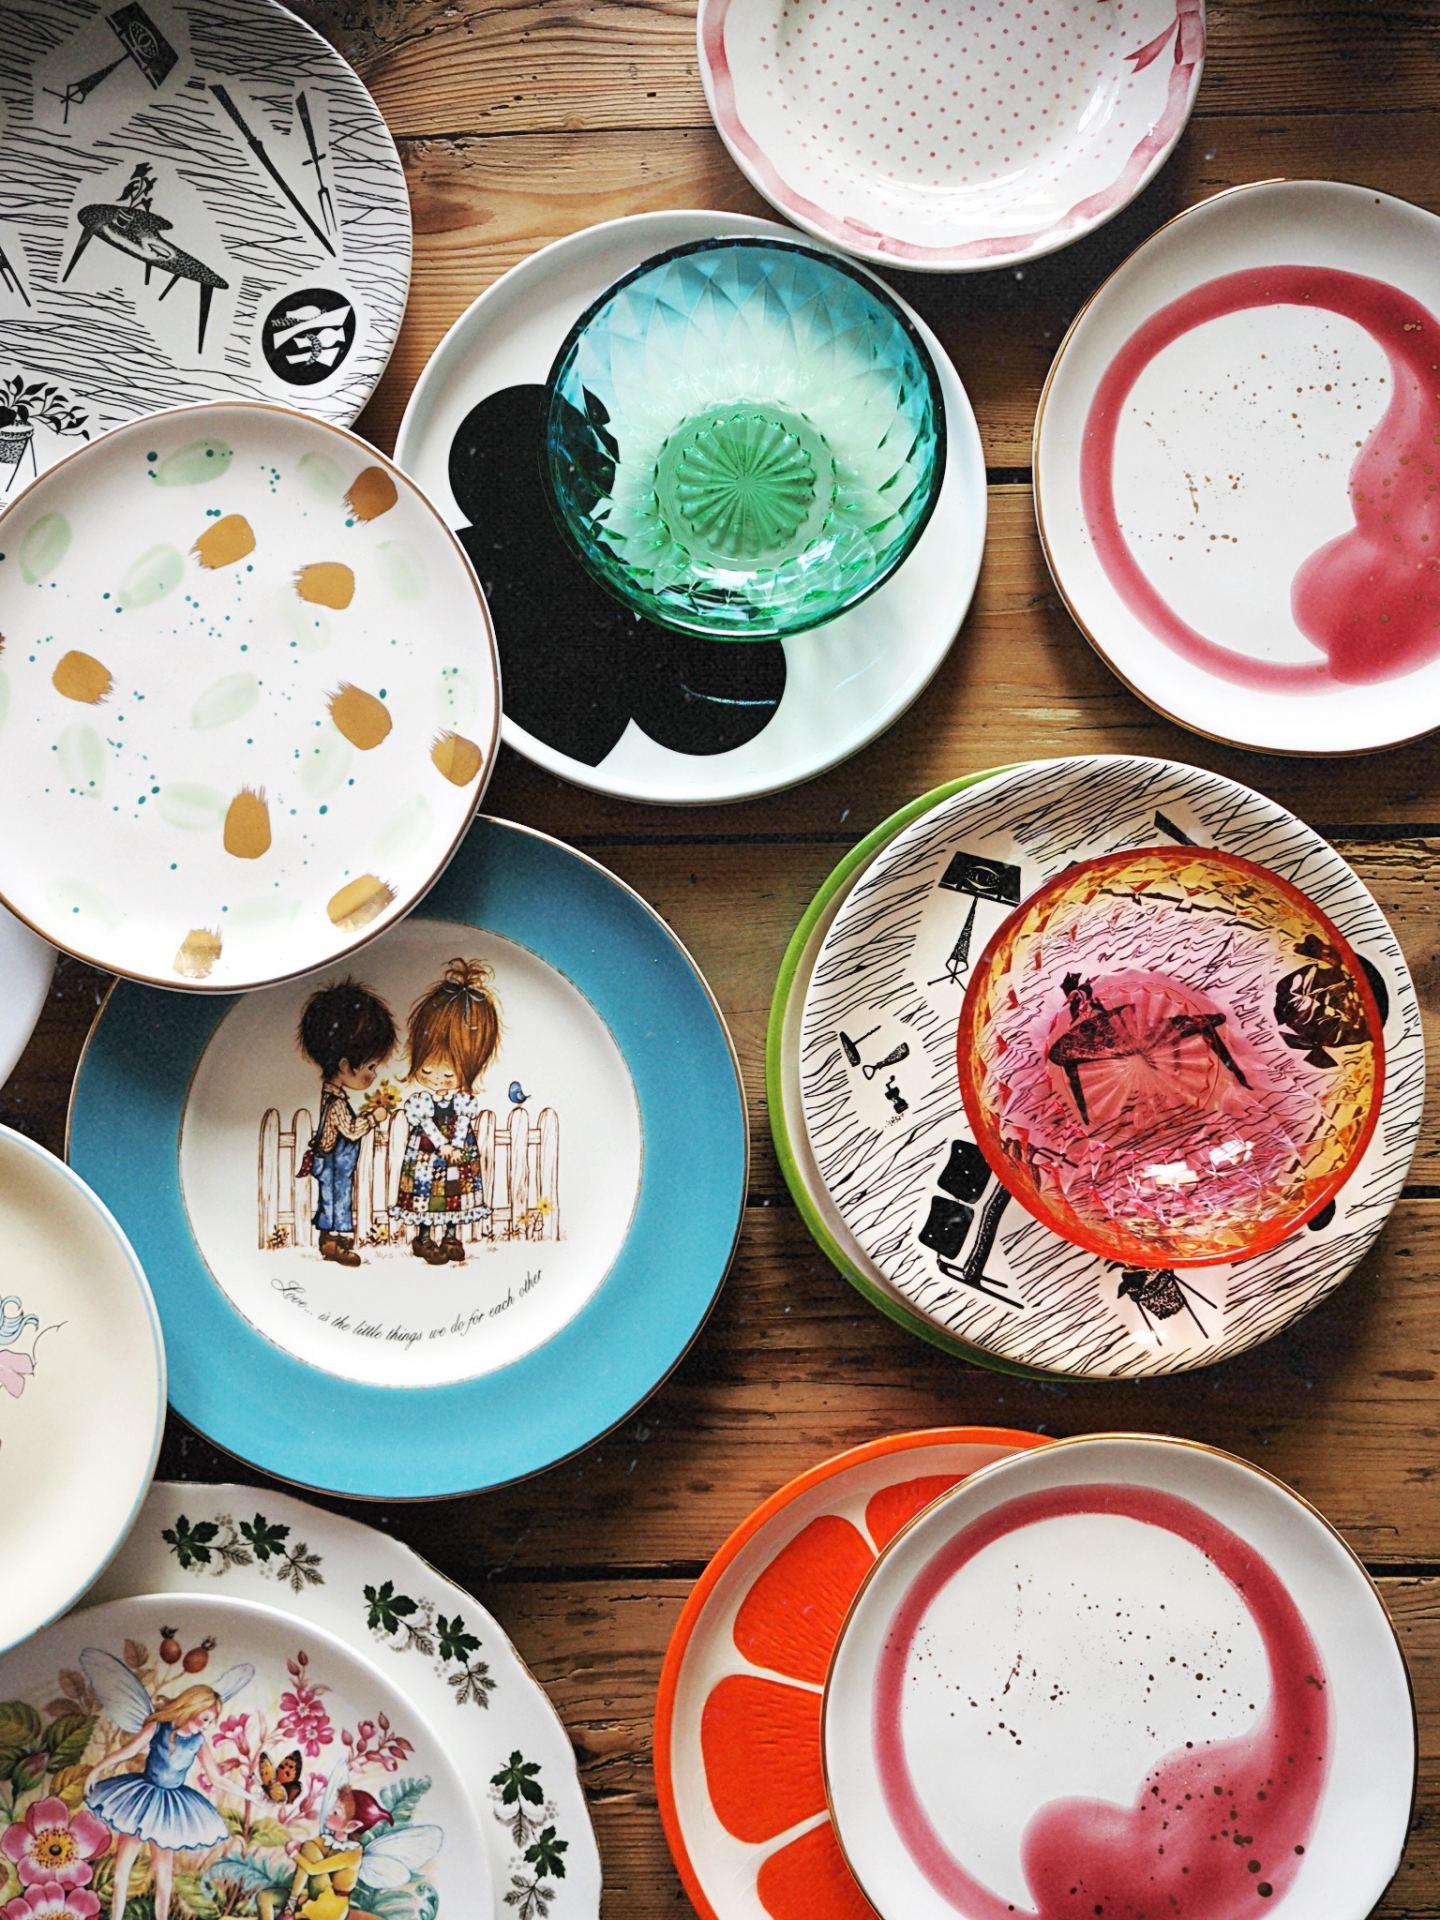 vintage crockery collection anthropologie my little pony rainbow glass plates bowls